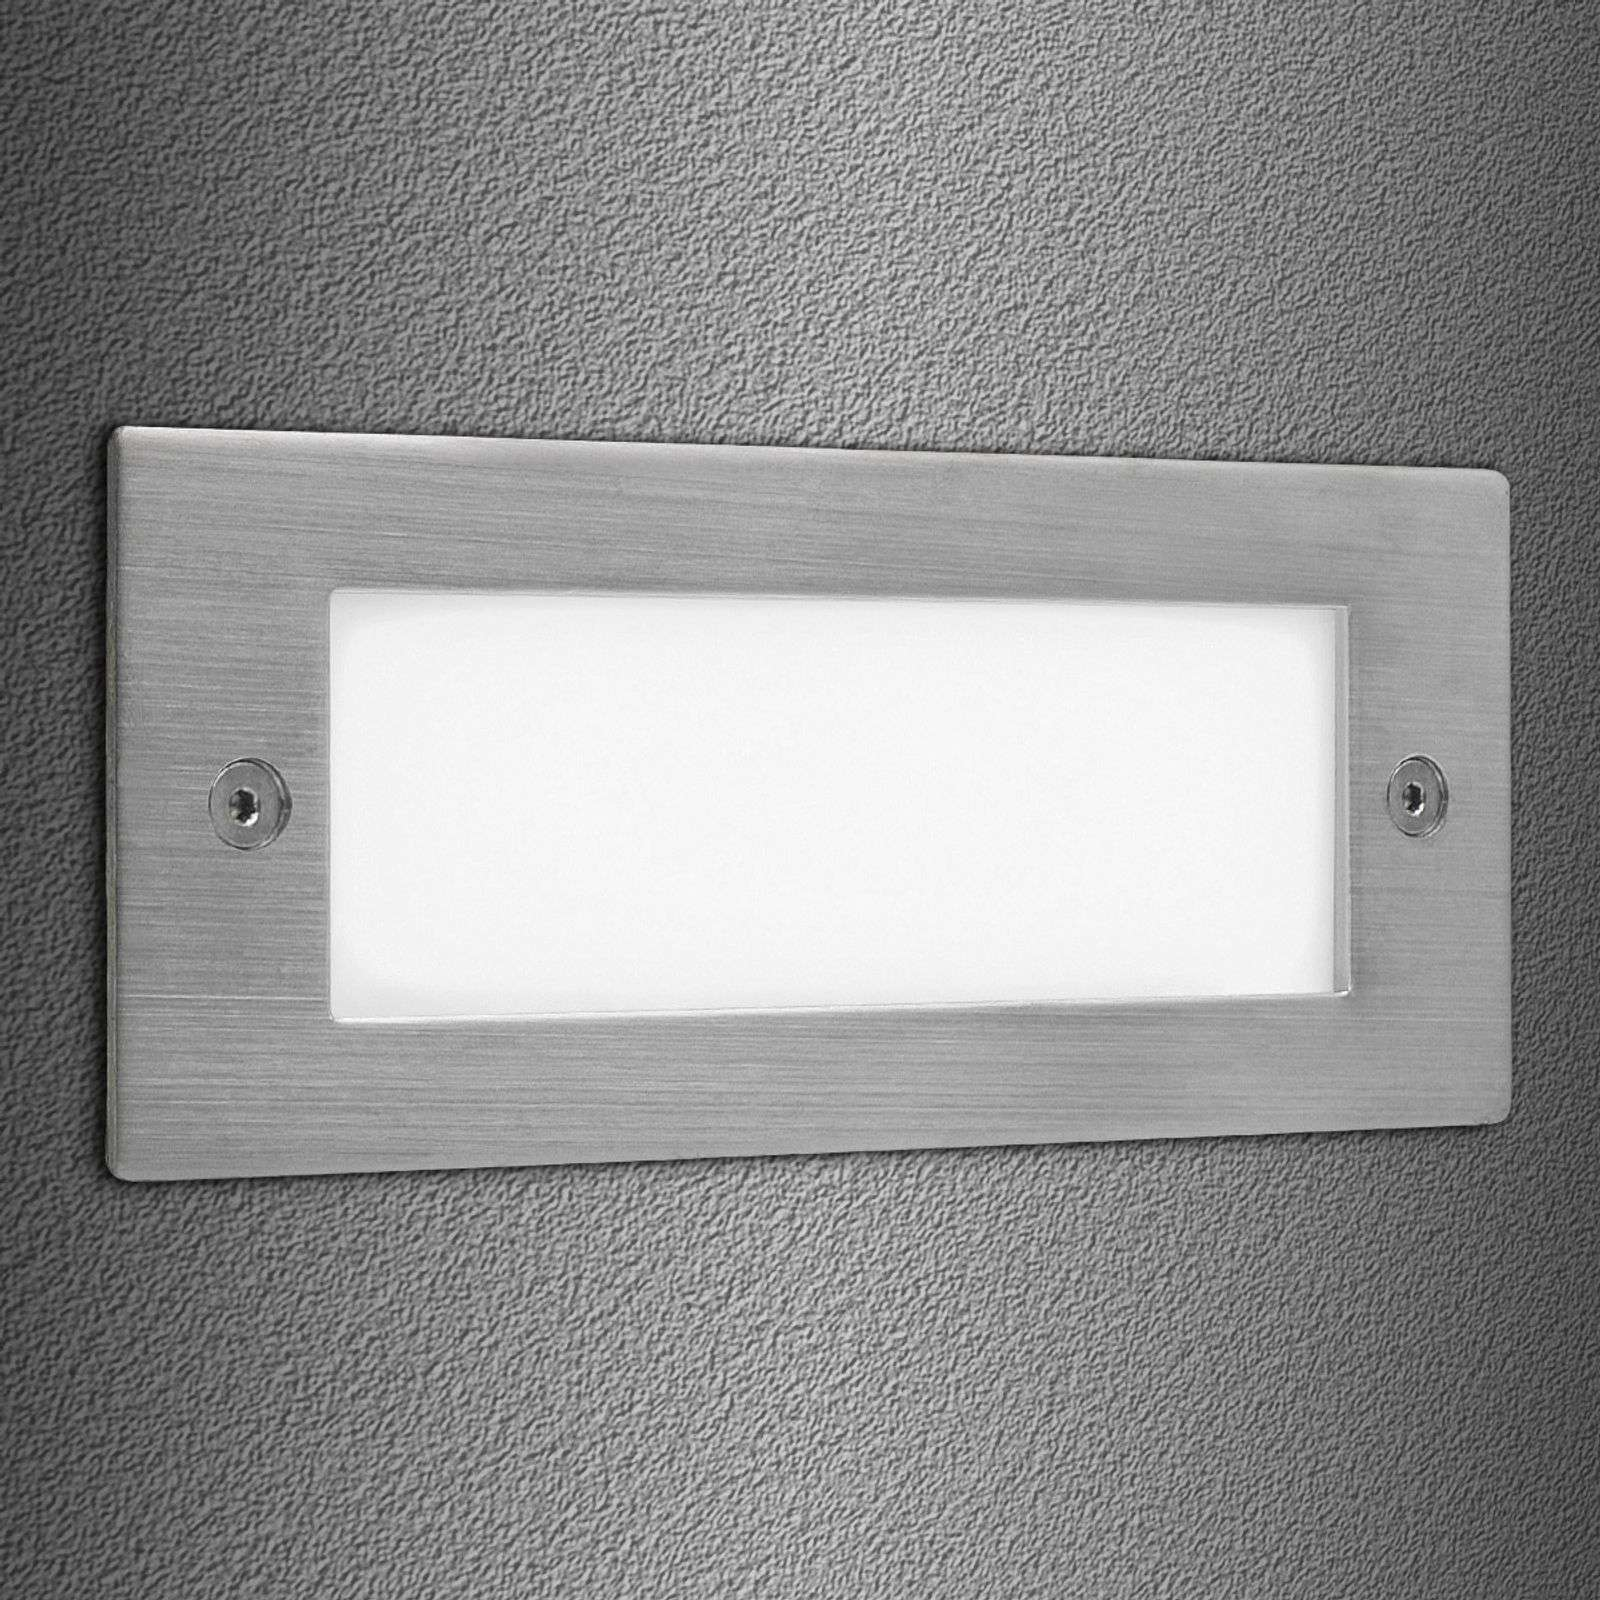 Wandinbouwspot Brick LED 16 wit